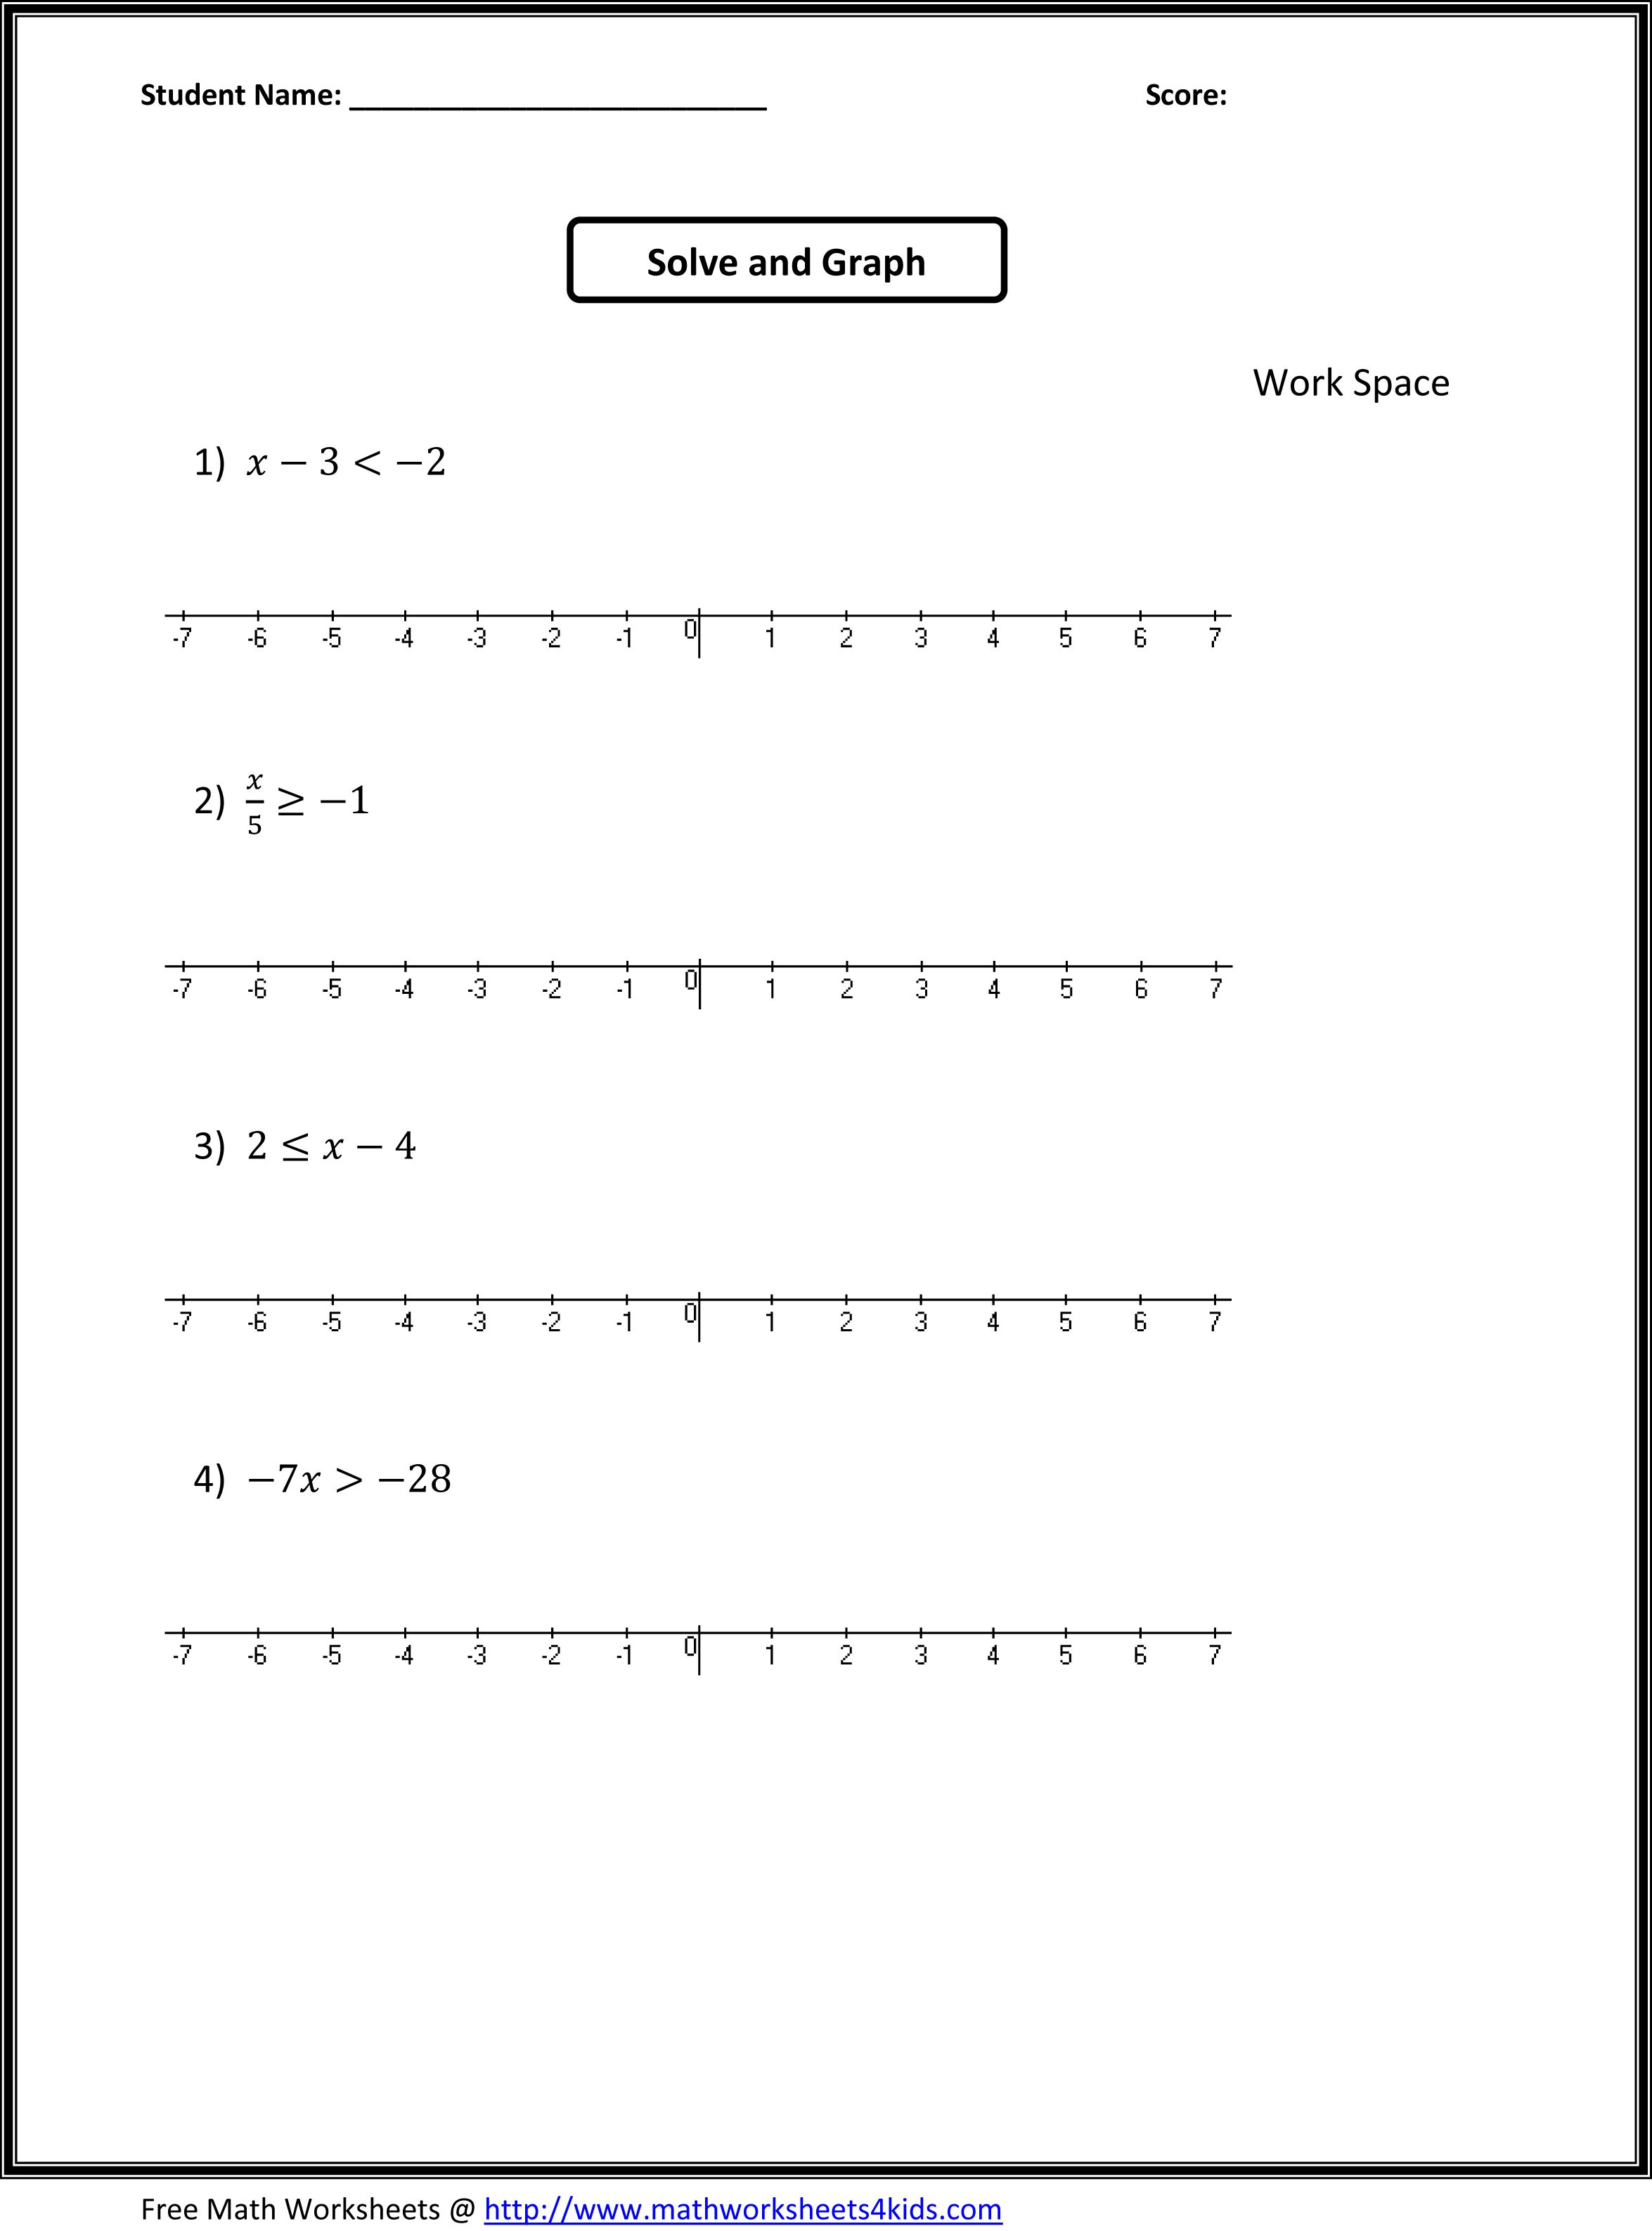 7th Grade Algebra Worksheets 7th Grade Math Worksheets – Grade 7 Math Worksheets Free